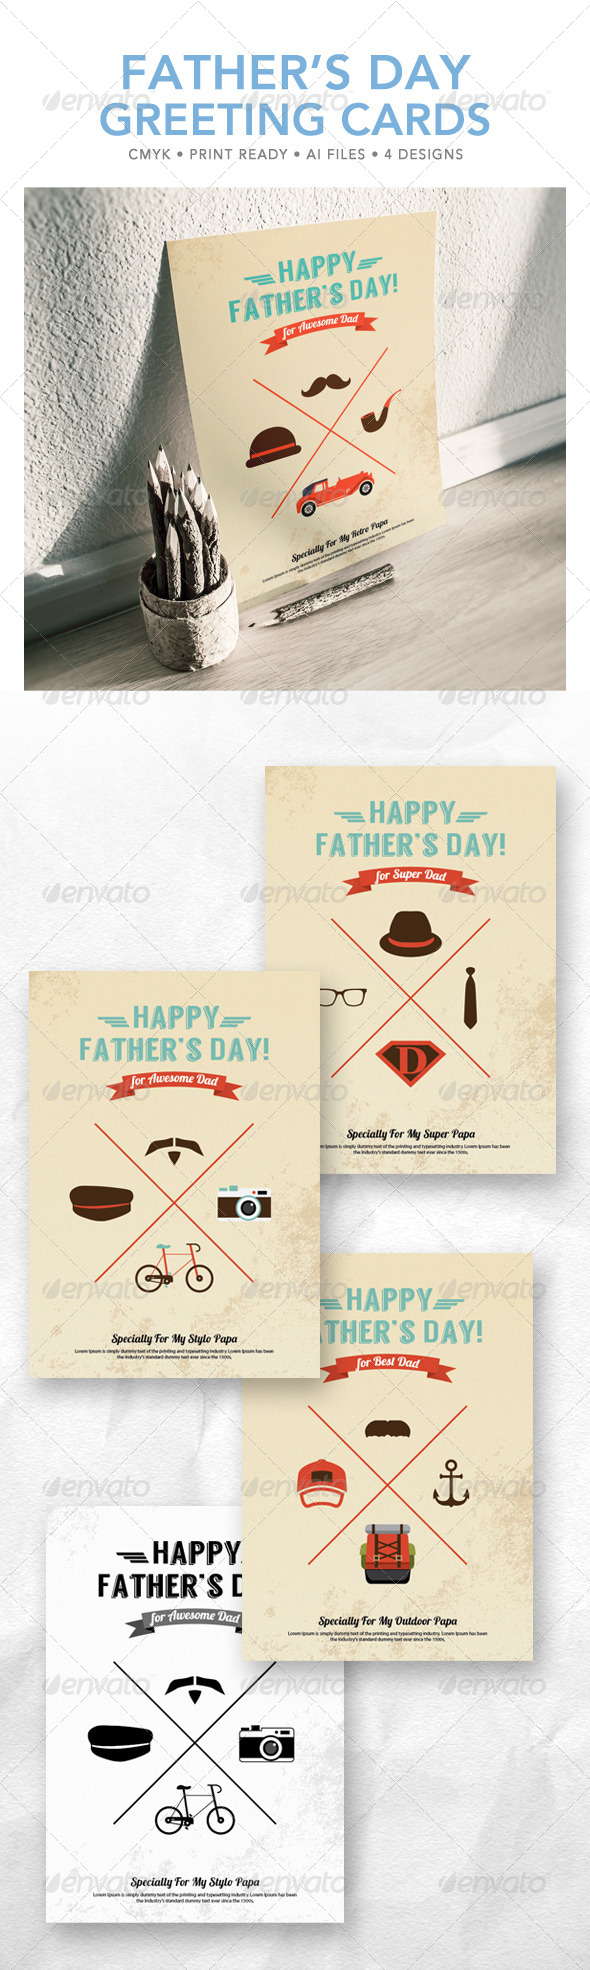 GraphicRiver Father s Day Greeting Card 7739603